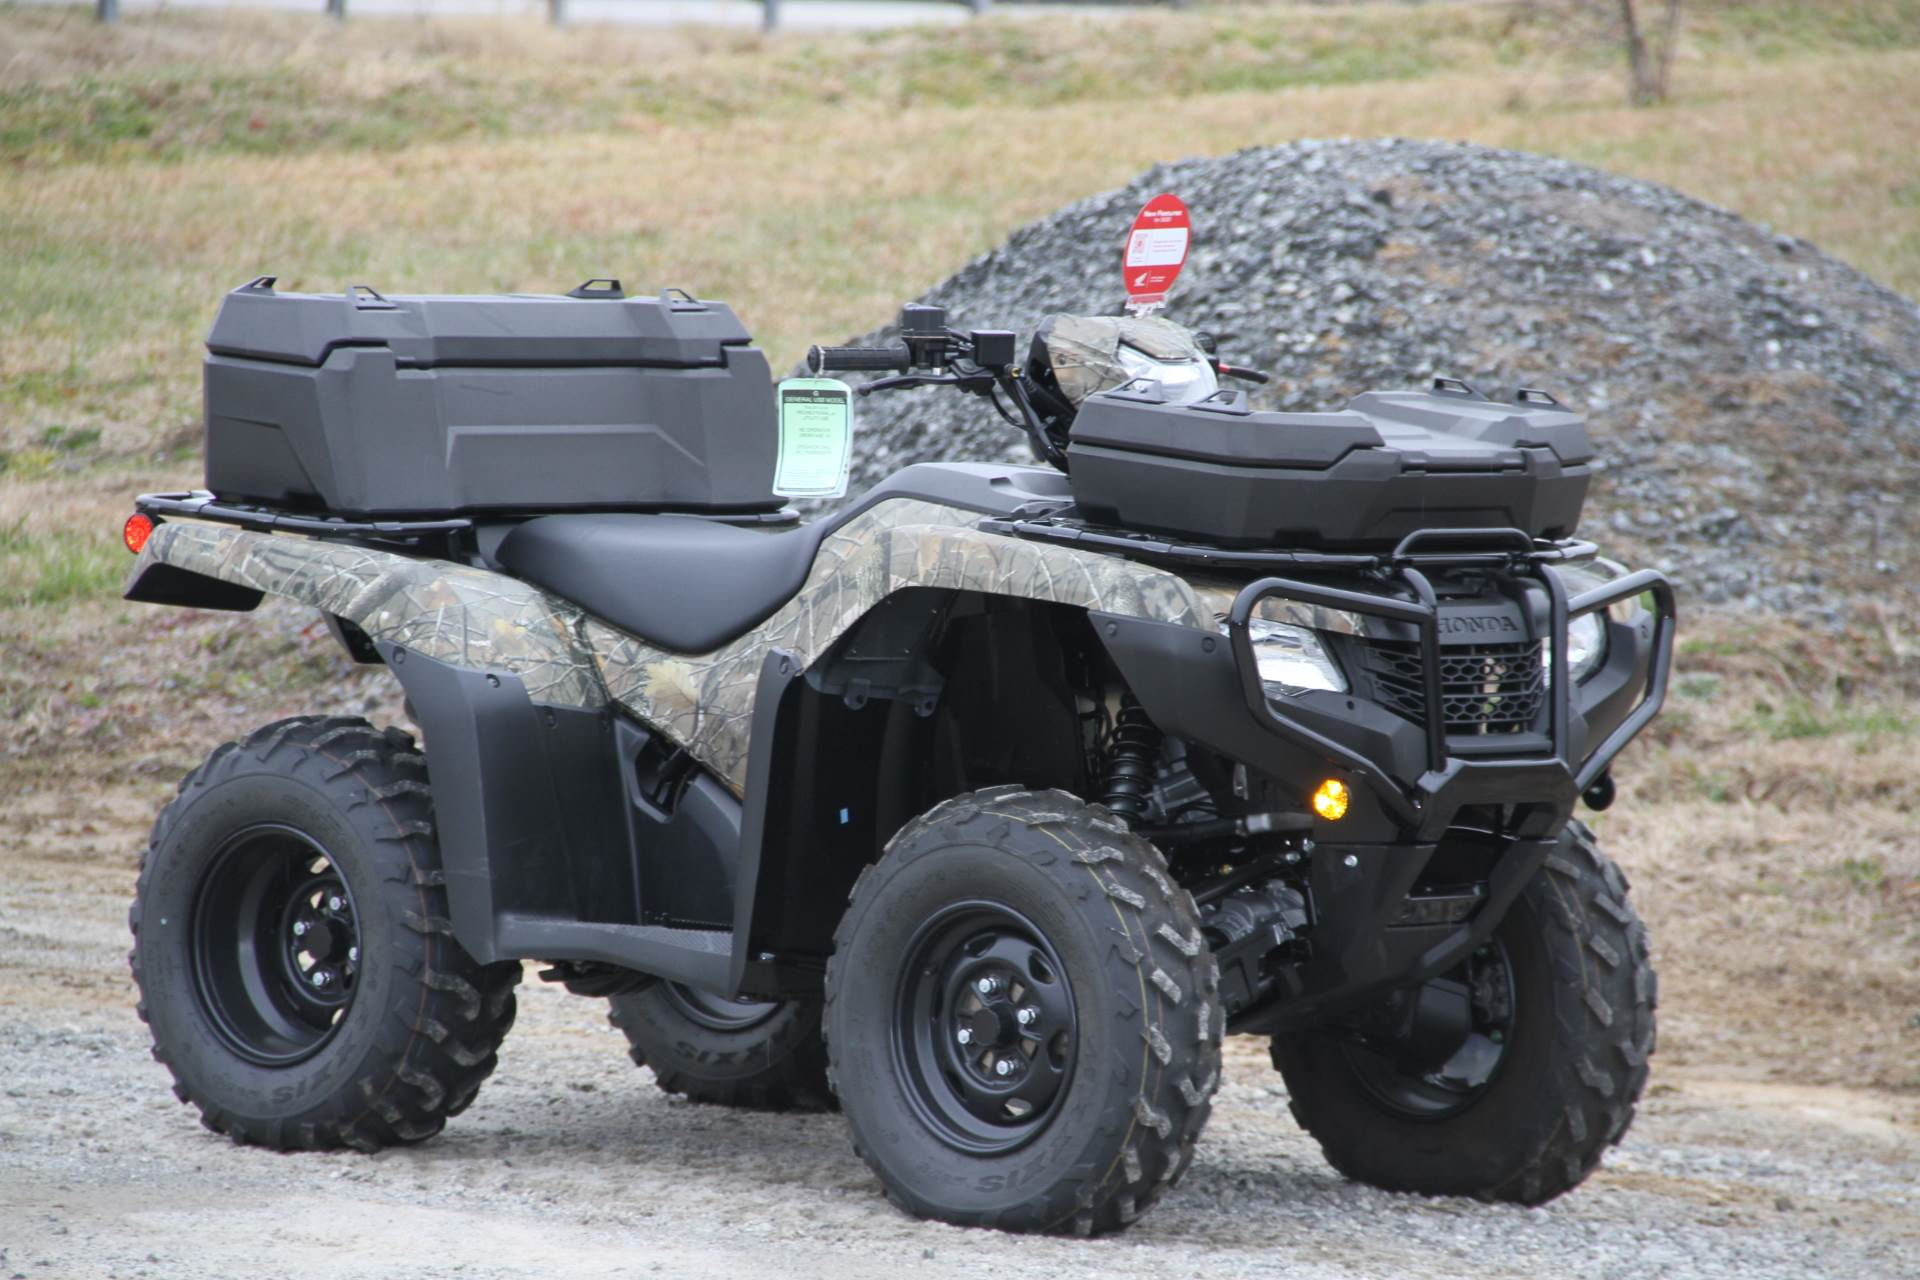 2020 Honda FourTrax Rancher 4x4 in Hendersonville, North Carolina - Photo 5